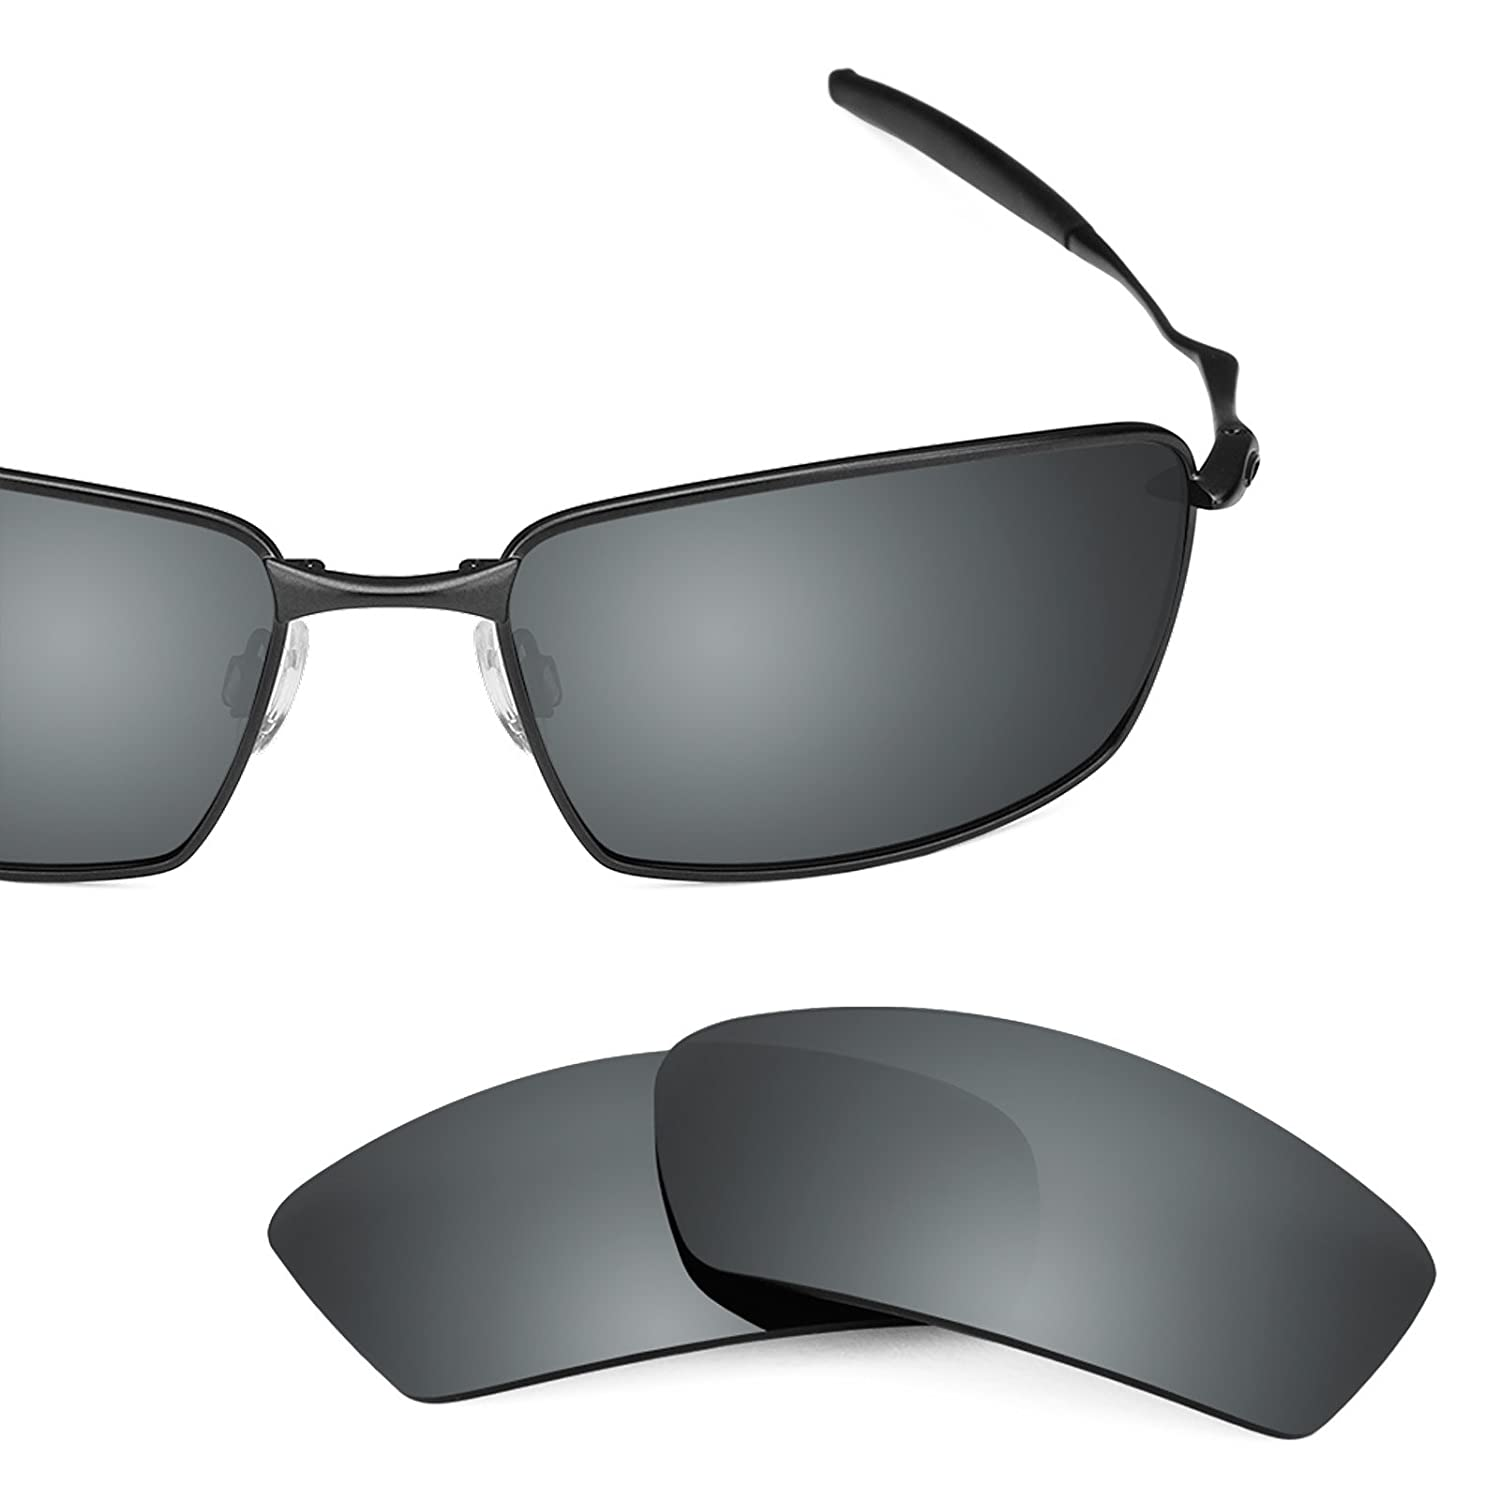 Amazon.com: Revant Polarized Replacement Lenses for Oakley Square ...